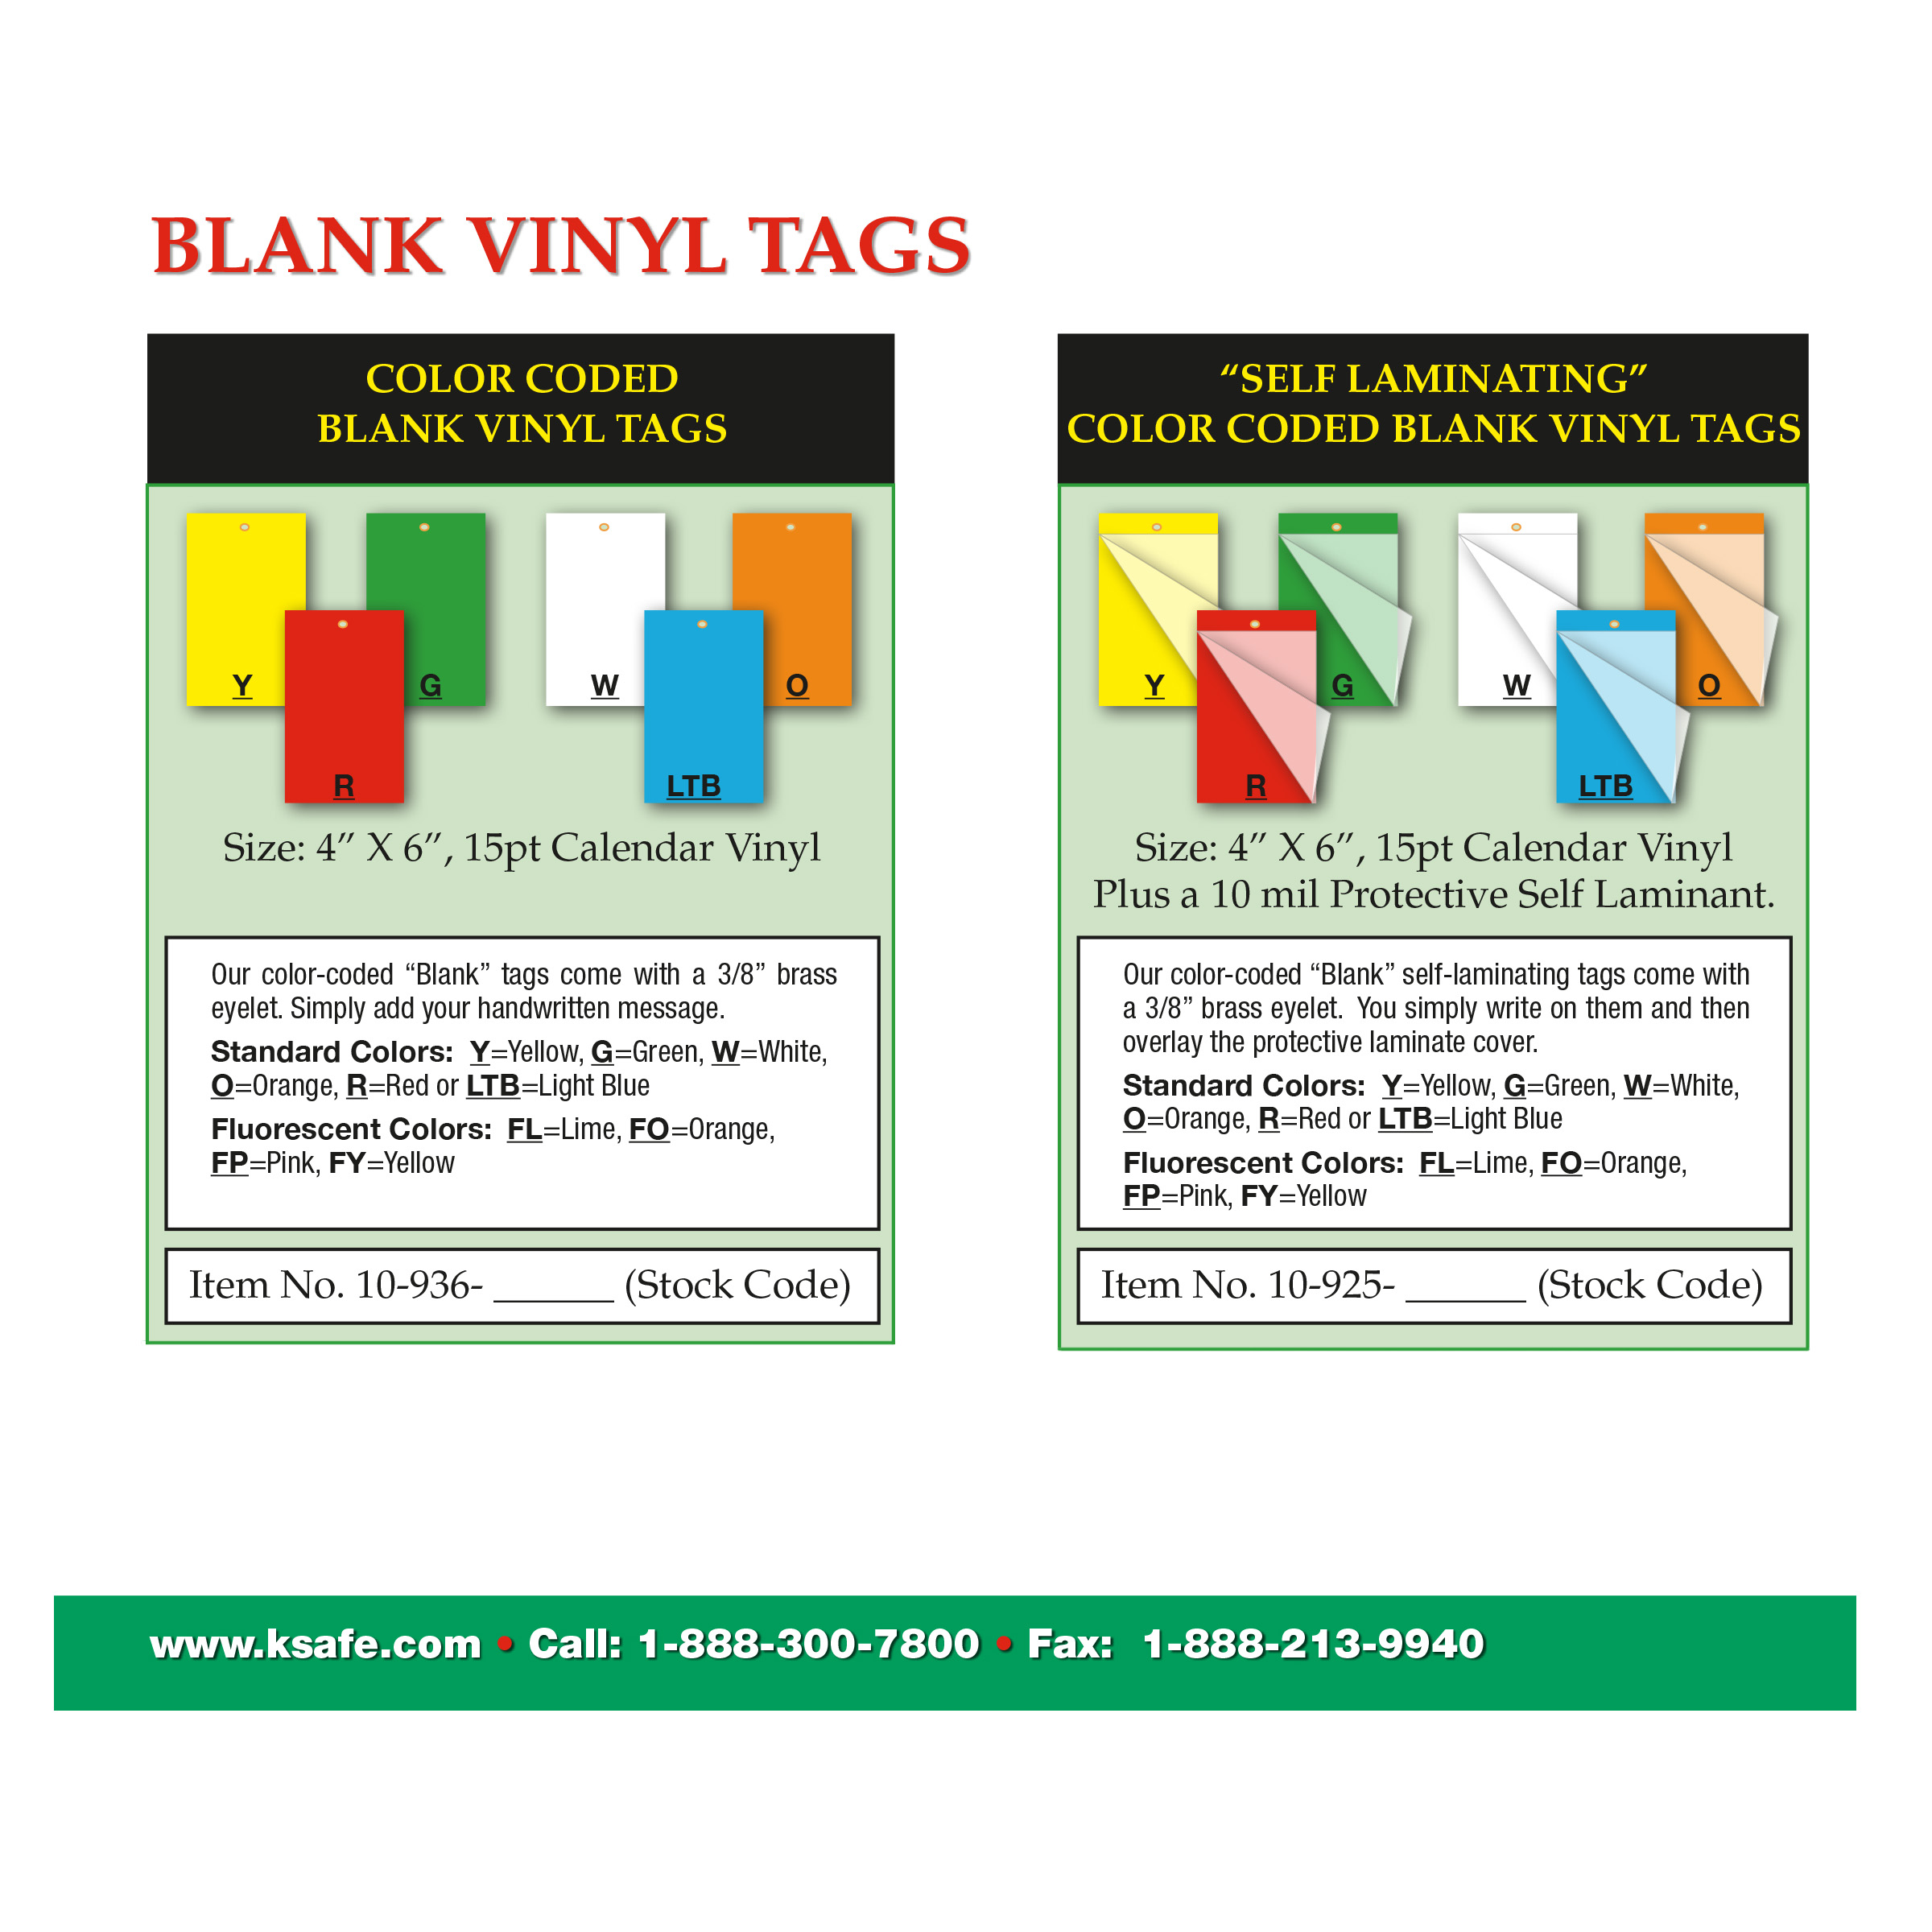 """Self Laminating"" Color Coded Blank Vinyl Tag"